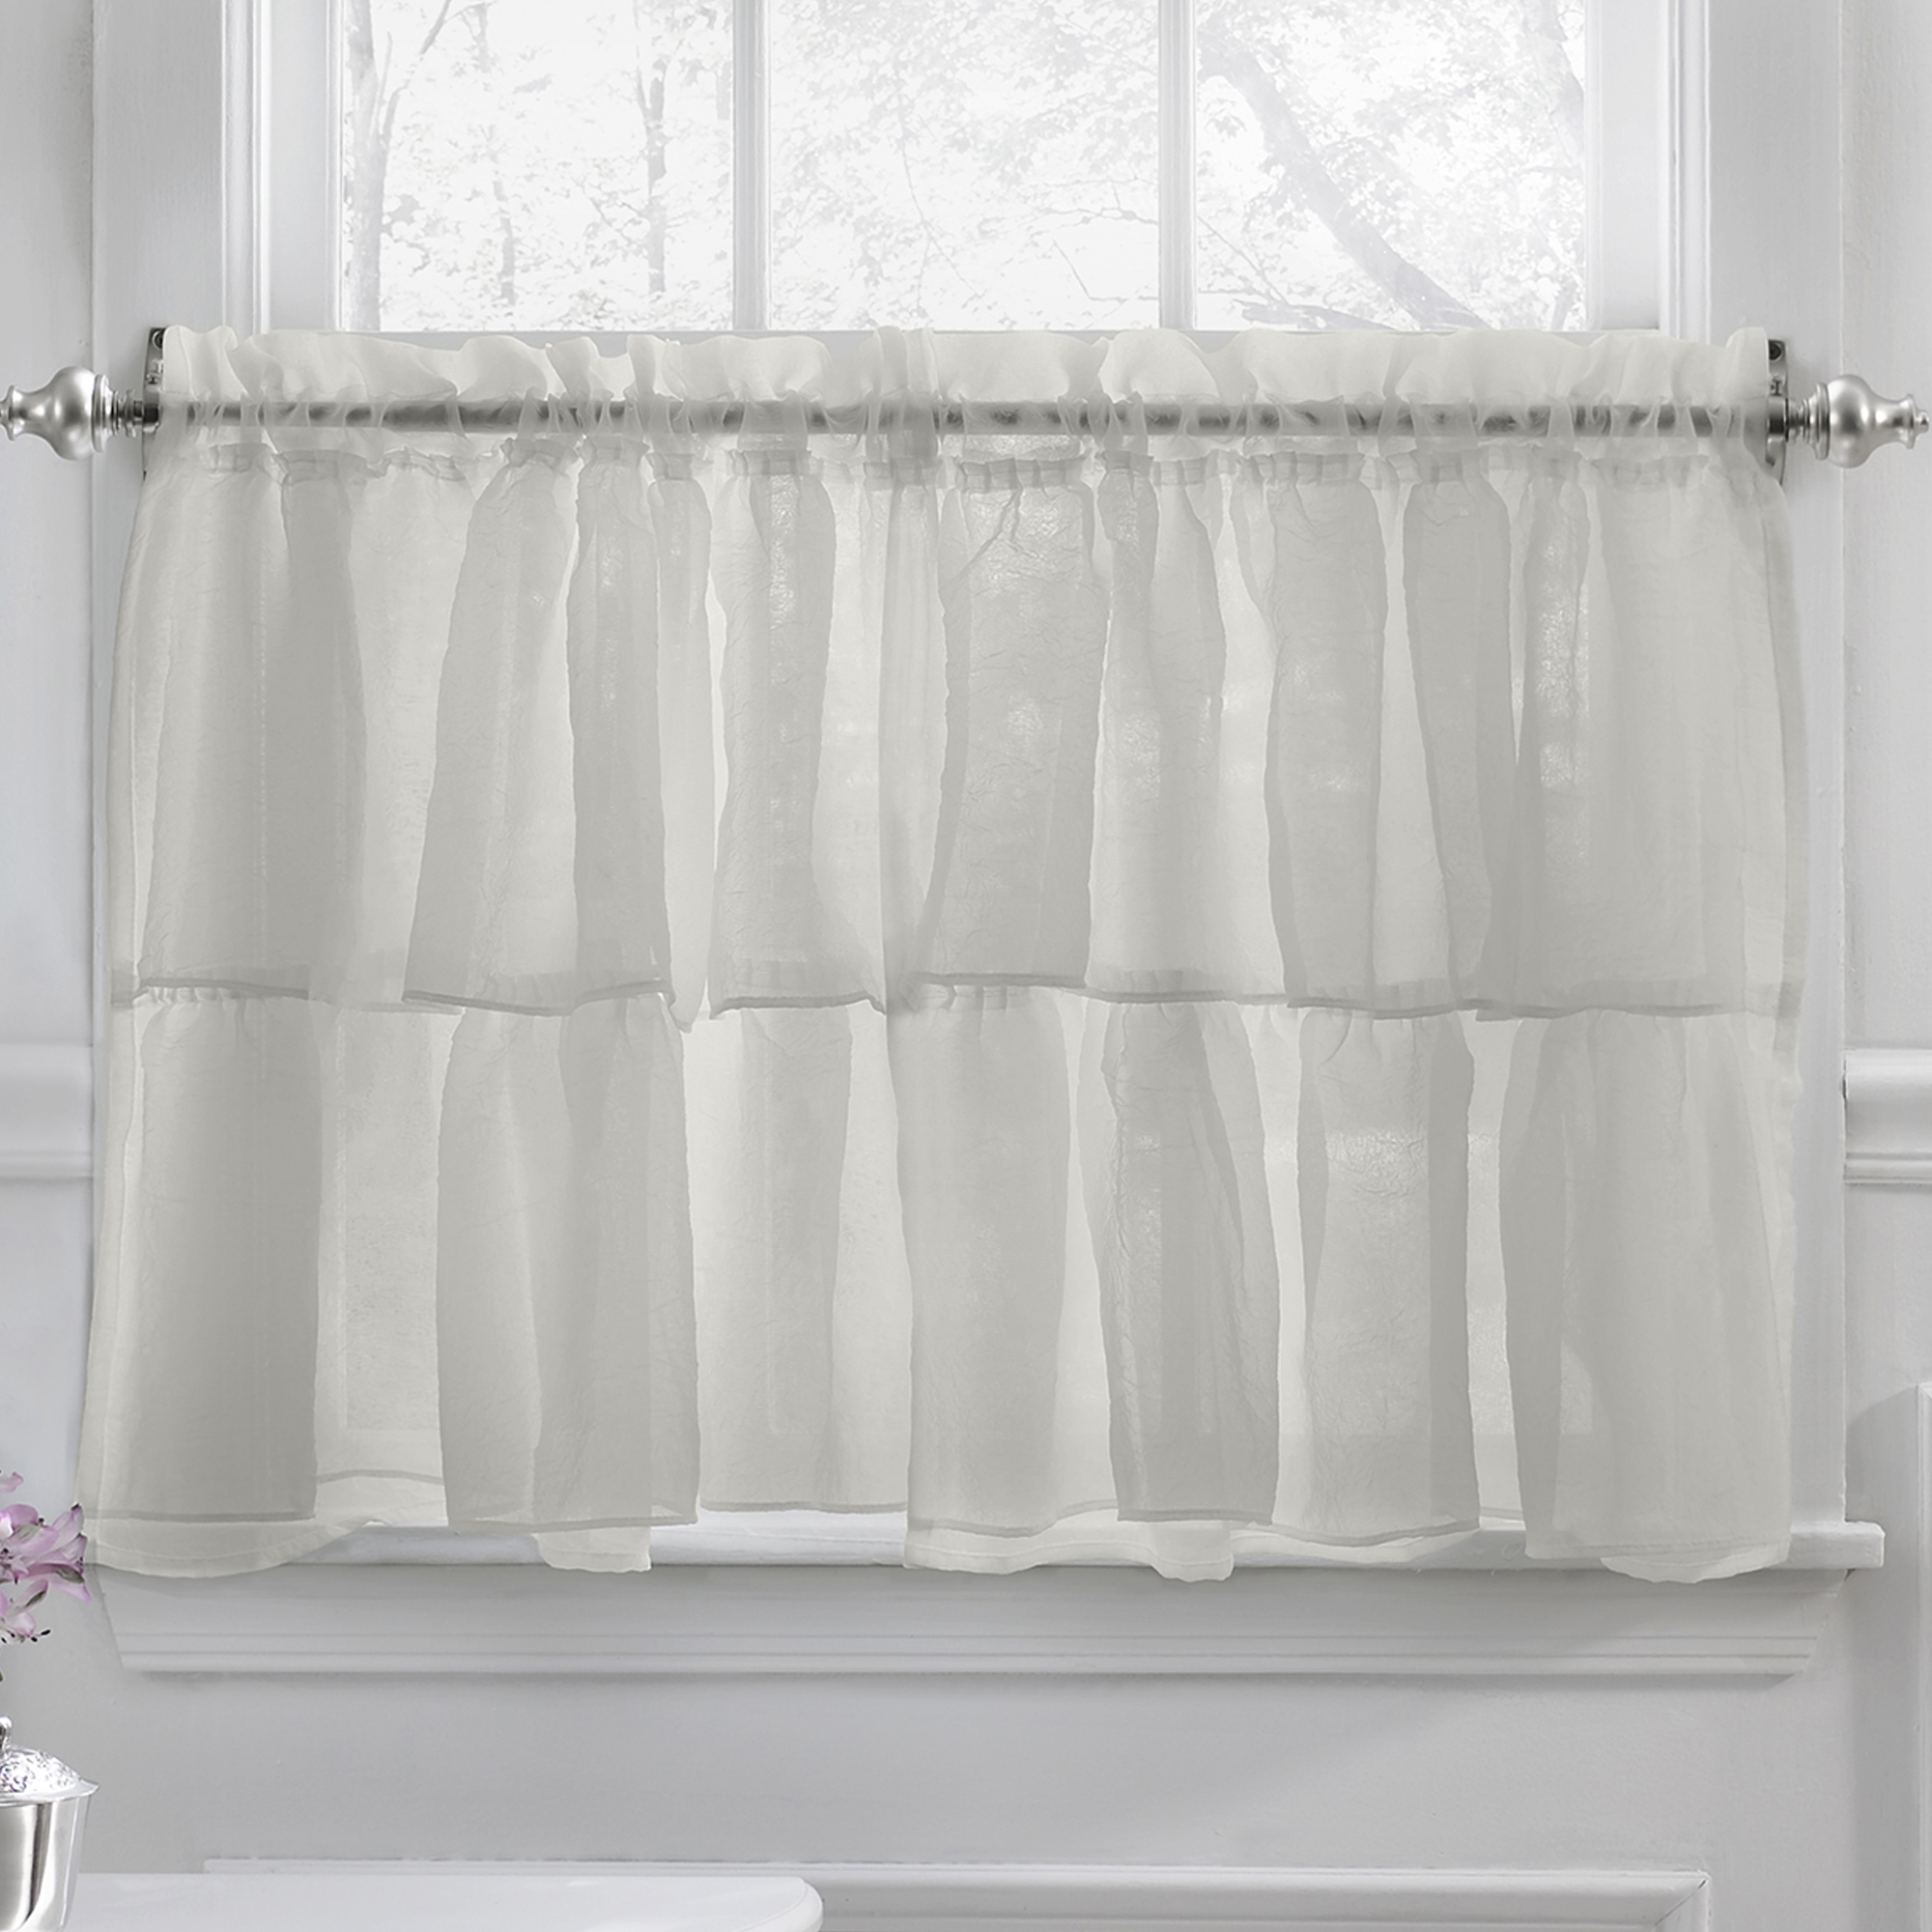 "Gypsy Crushed Voile Ruffle Kitchen Window Curtain 24"" Tier"